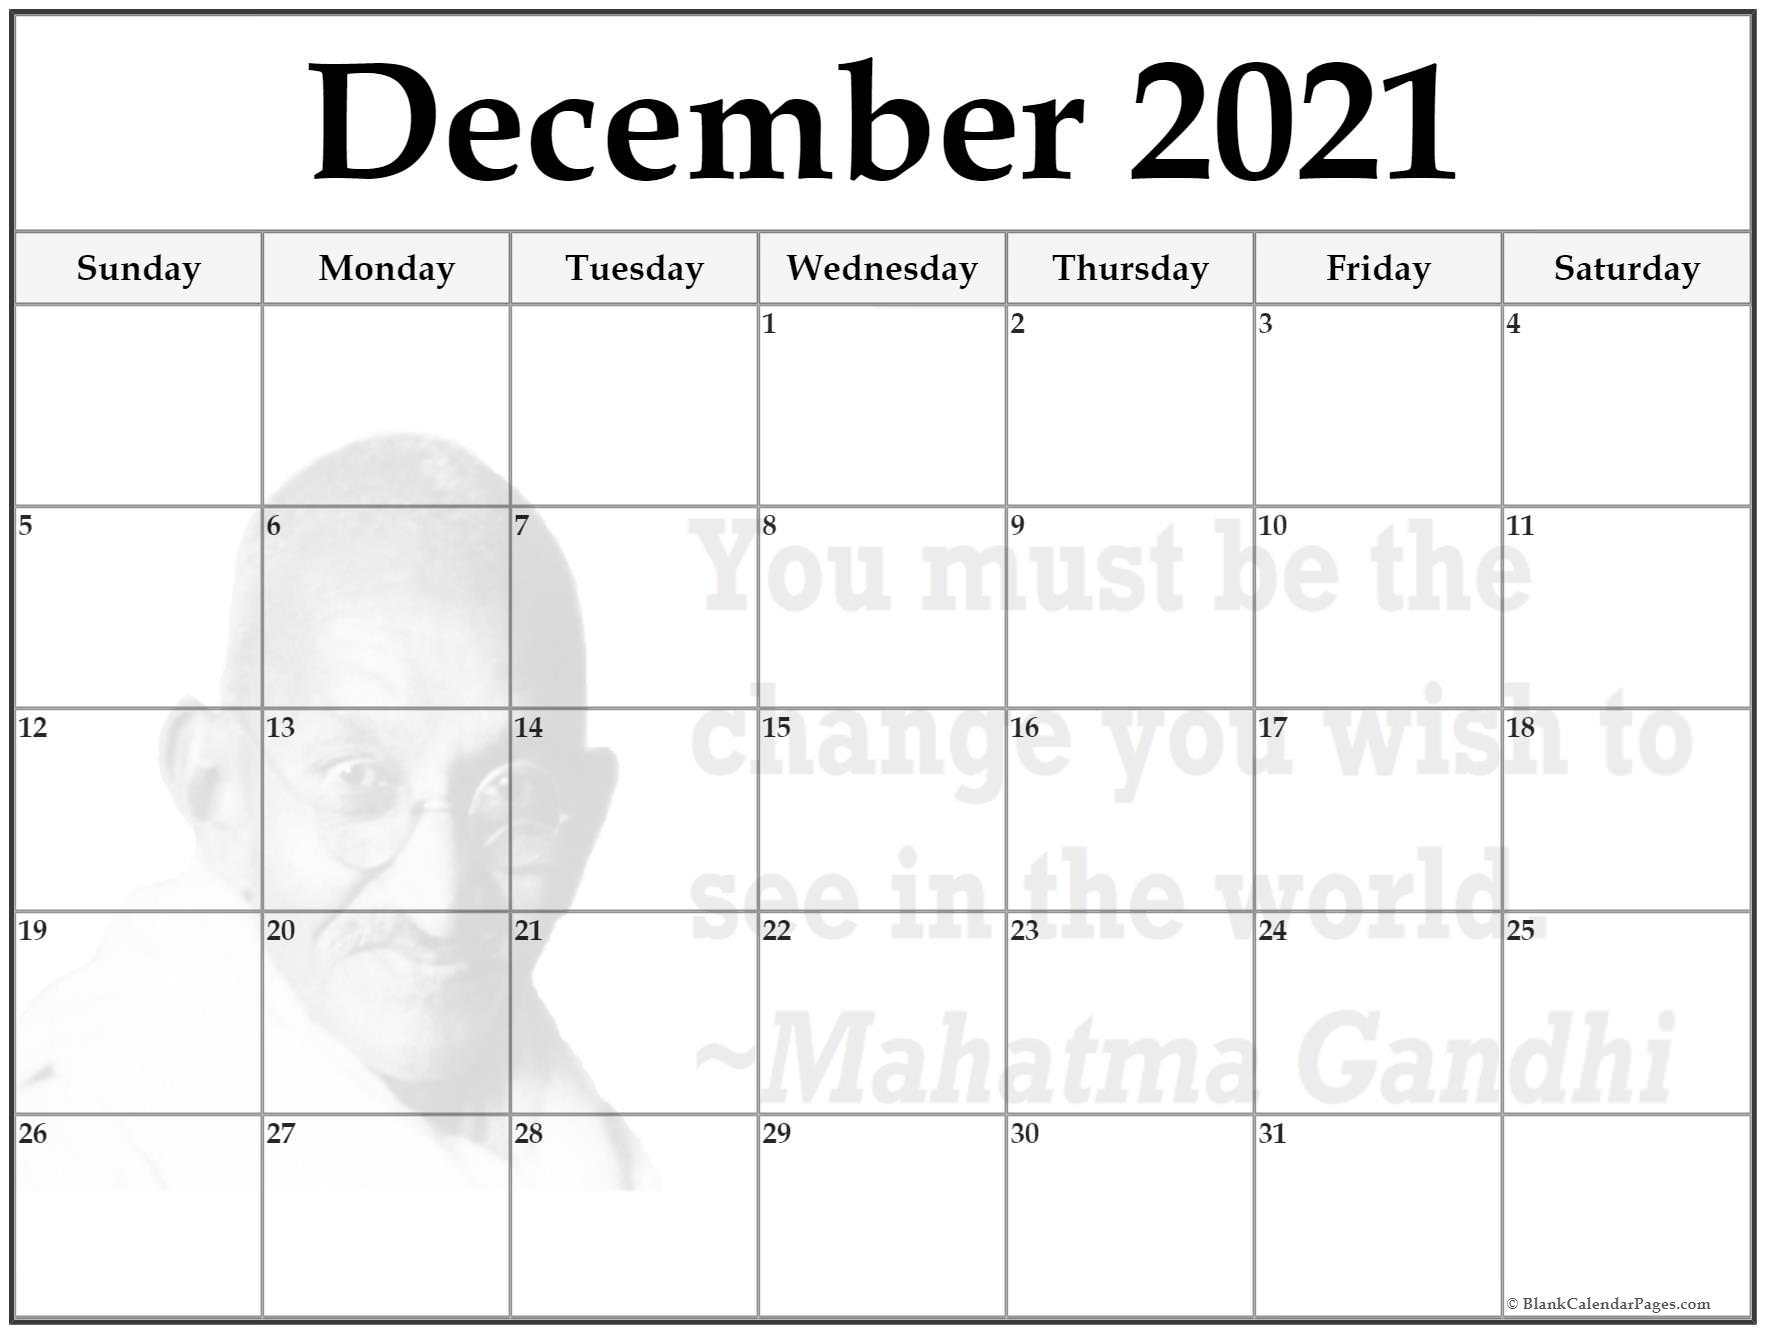 December 2018 gandhi calendar. You must be the change you wish to see in the world. ~Mahatma Gandhi